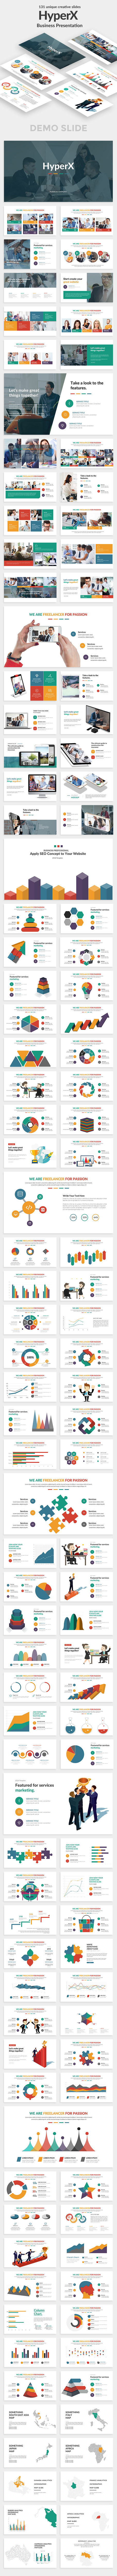 HyperX Business Powerpoint Template - Business PowerPoint Templates